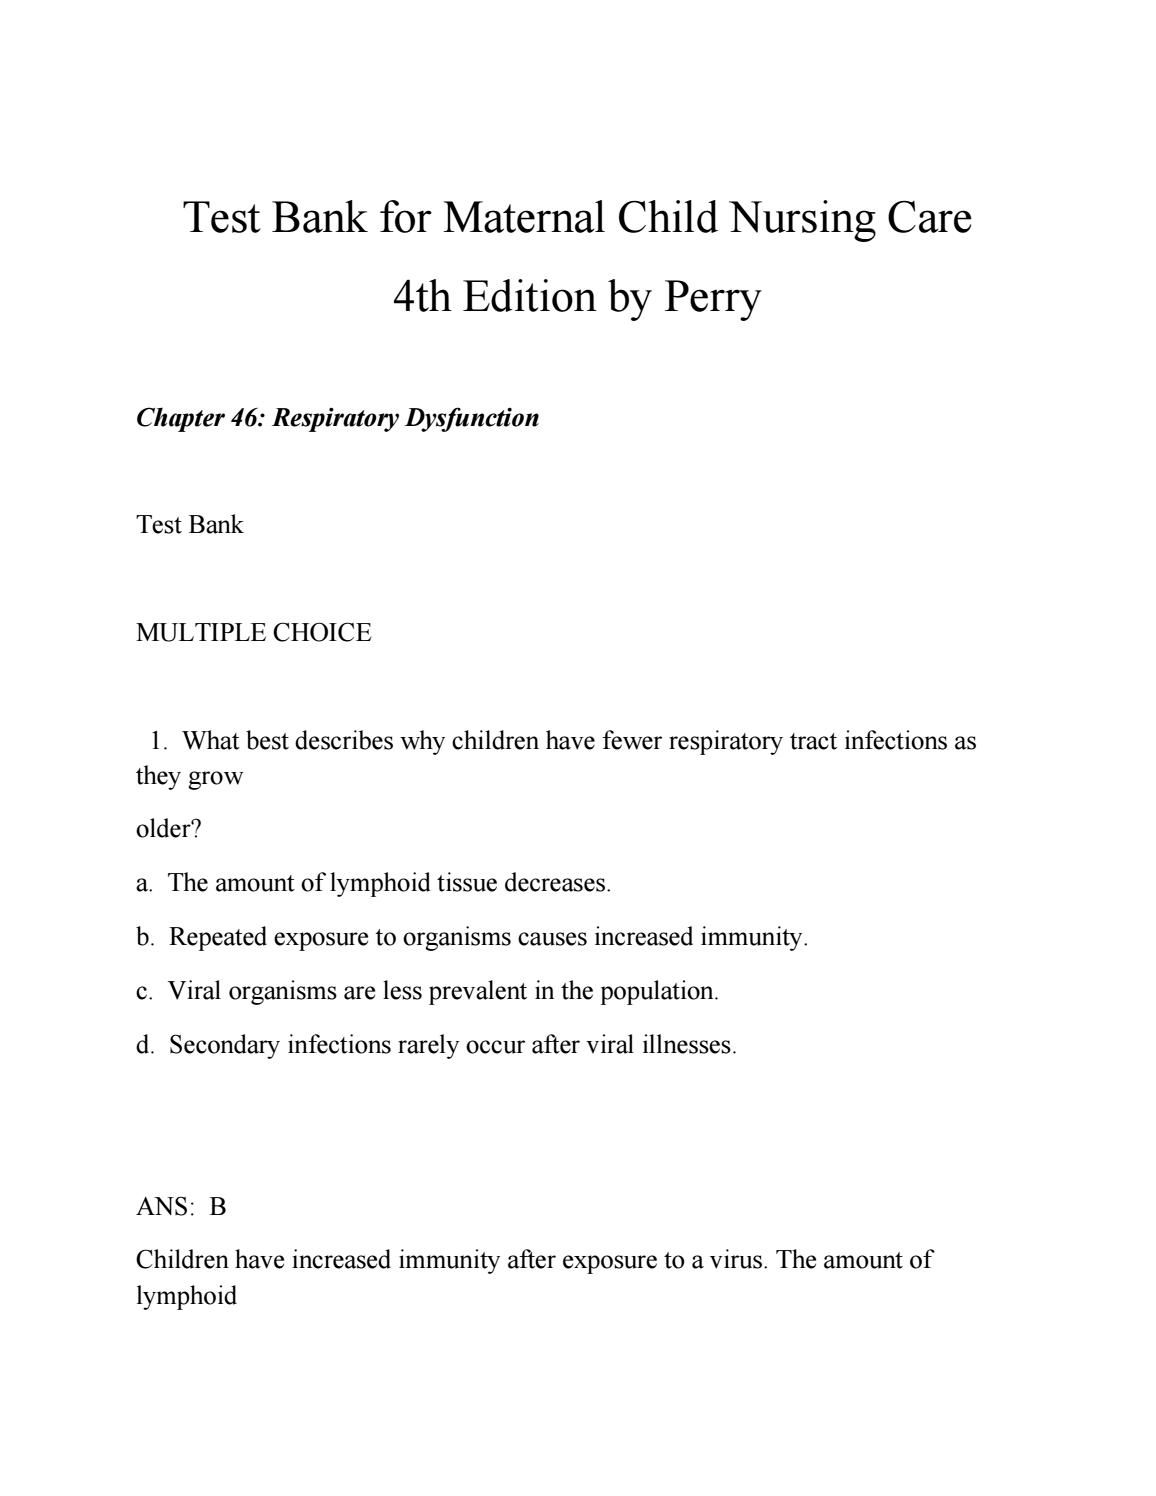 Test bank for maternal child nursing care 4th edition by perry ...